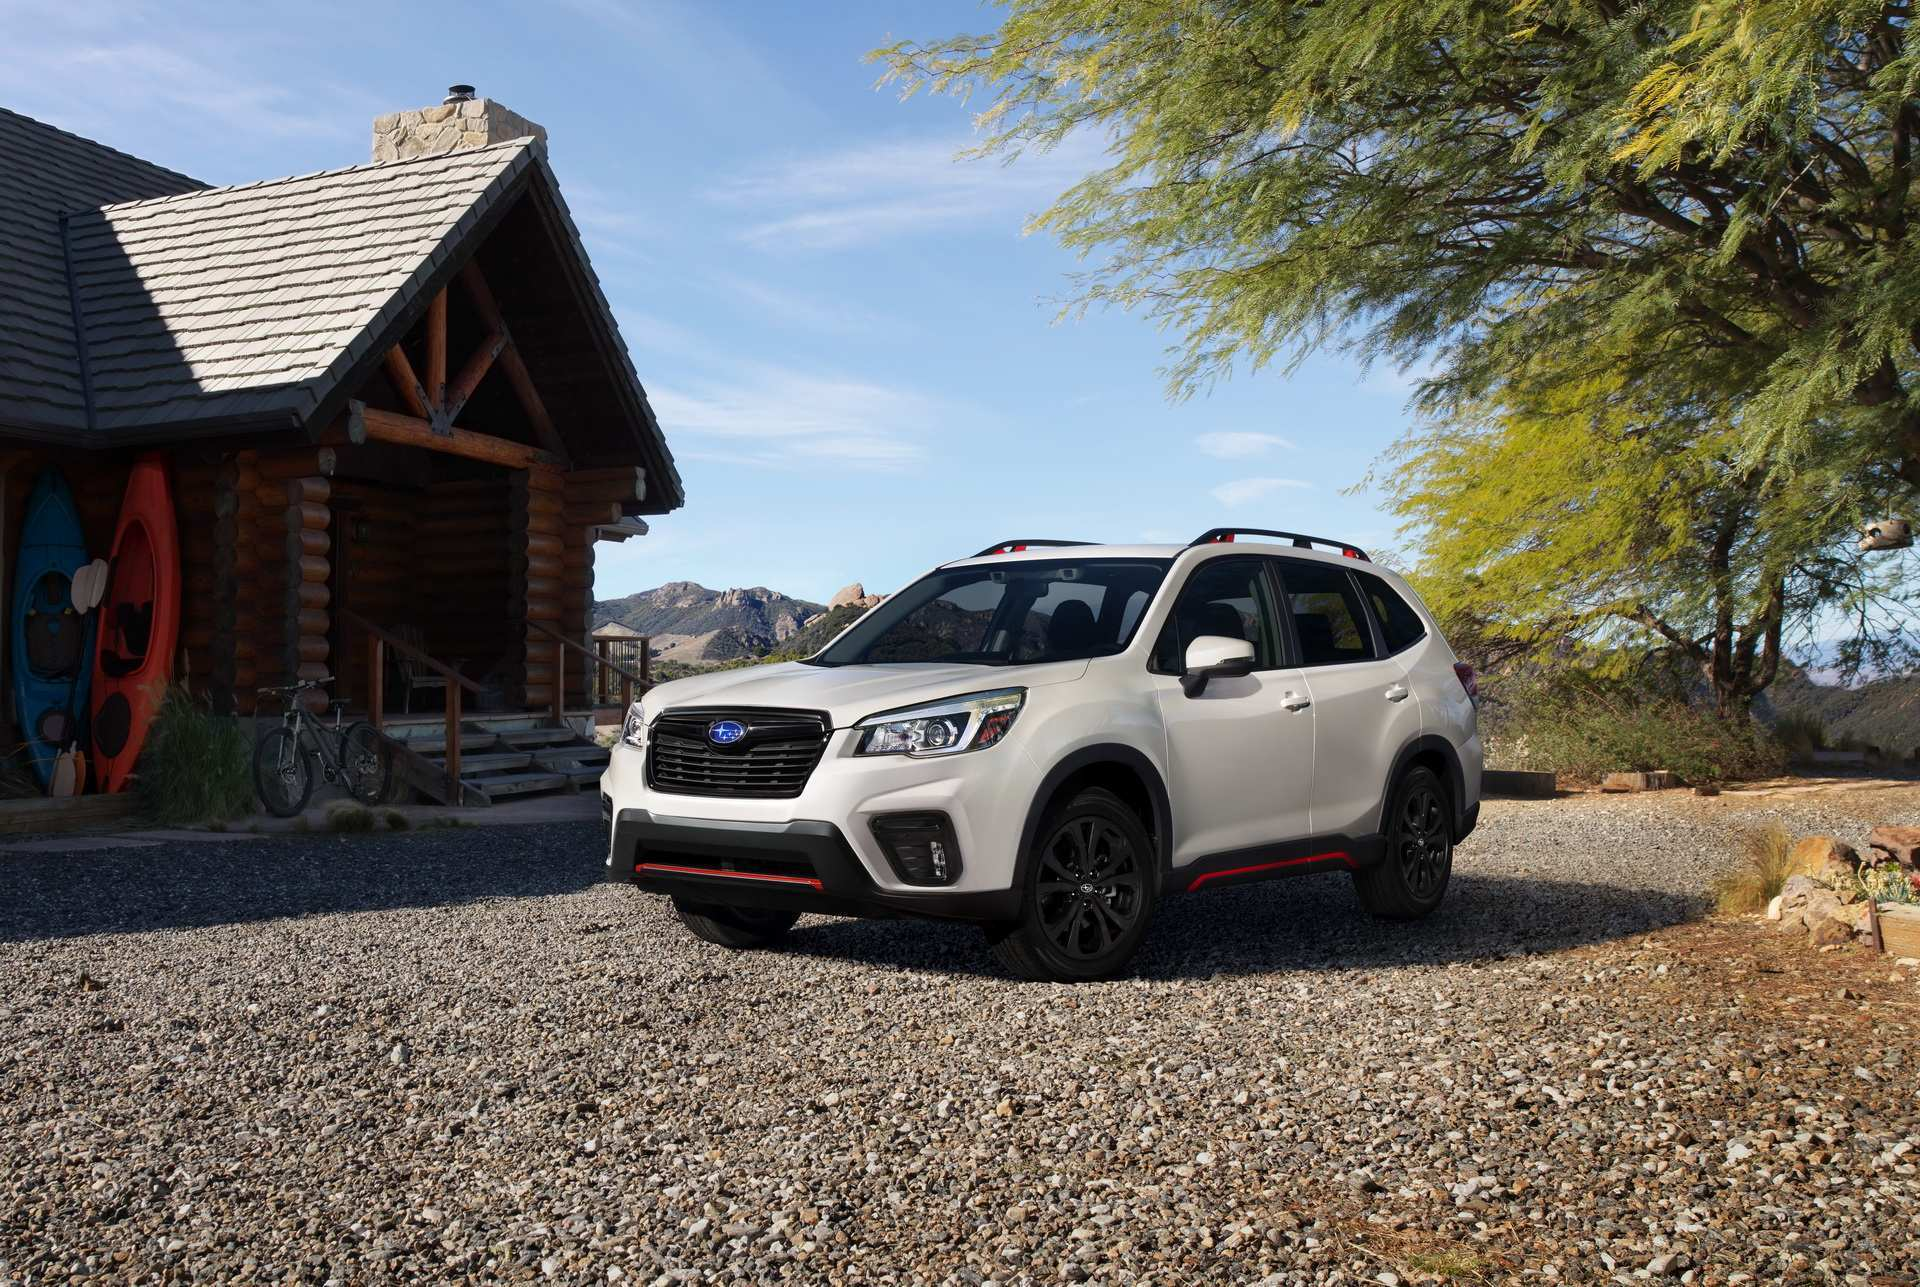 30 All New 2019 Subaru Forester Debut Research New by 2019 Subaru Forester Debut